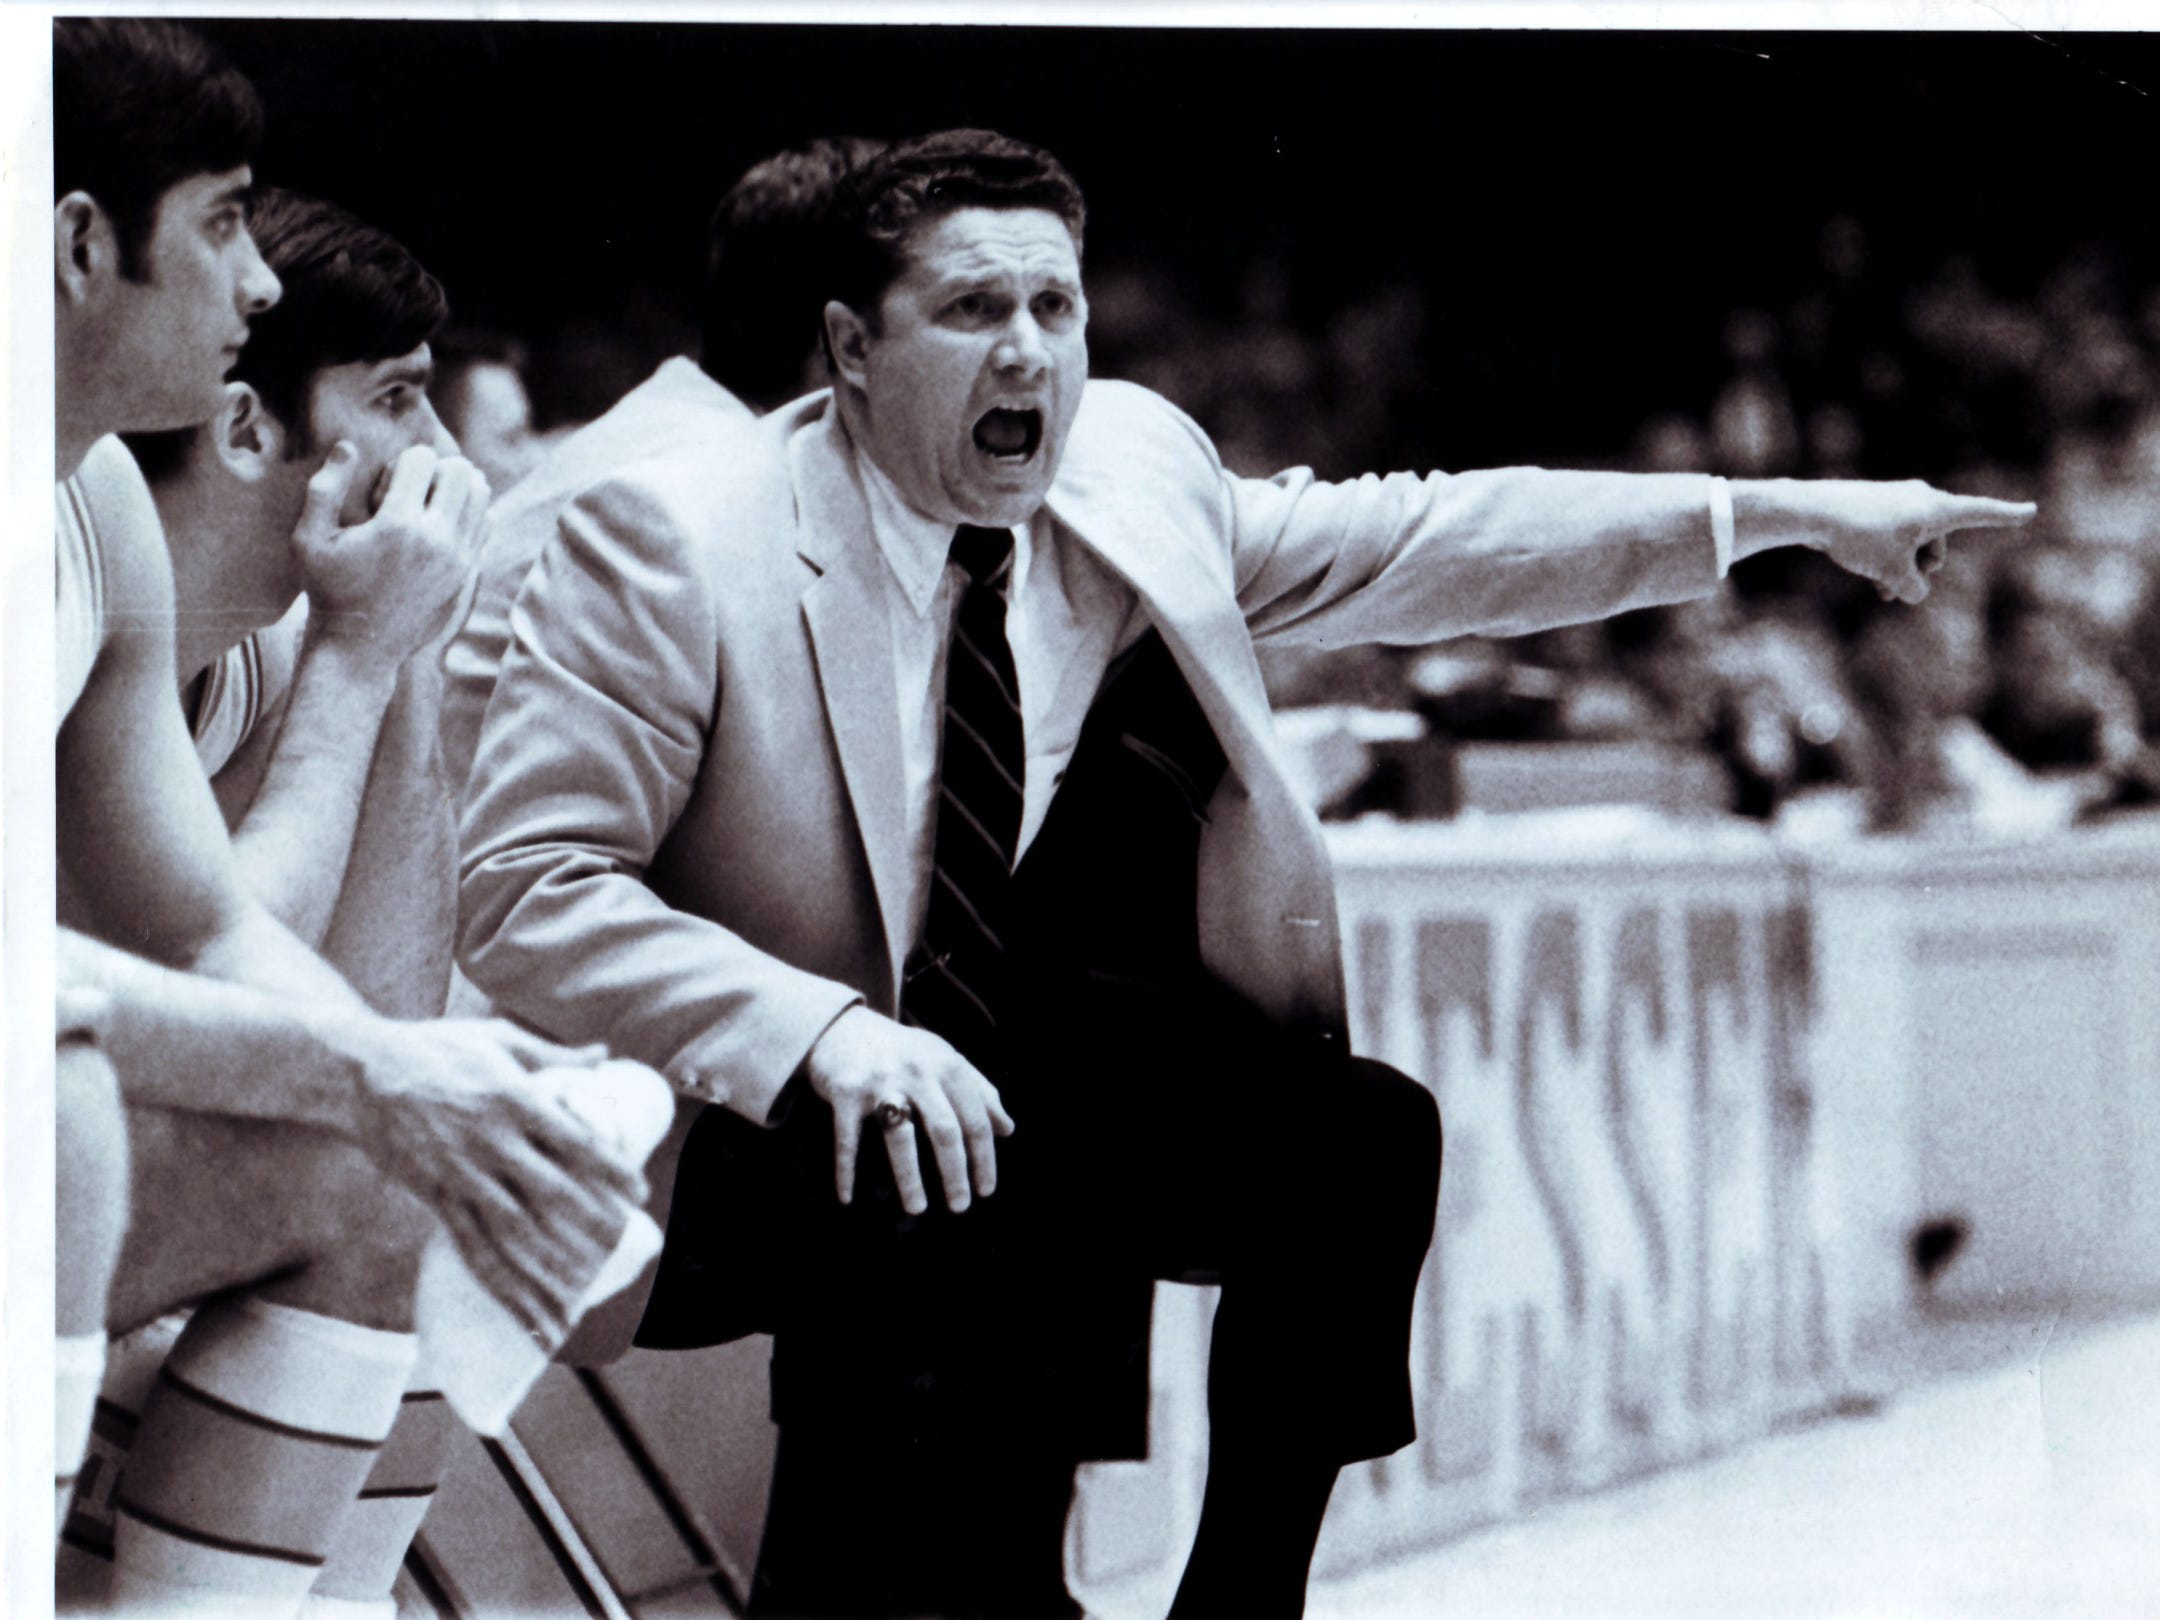 University of Tennessee basketball Coach Ray Mears in action on Feb. 17, 1970.